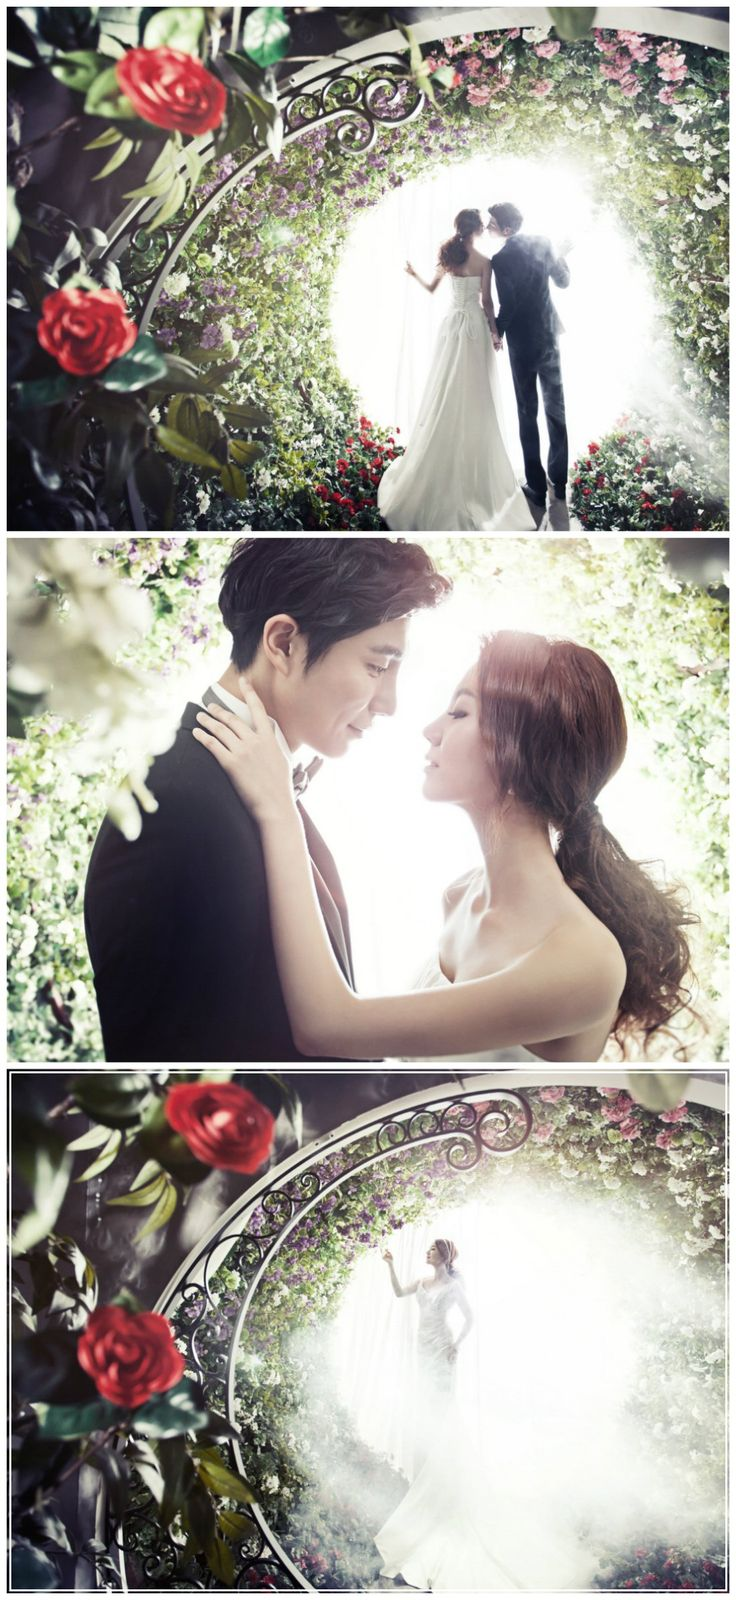 Garden theme | Korea Pre-Wedding in studio | May Studio - Korea wedding photographer on OneThreeOneFour.com